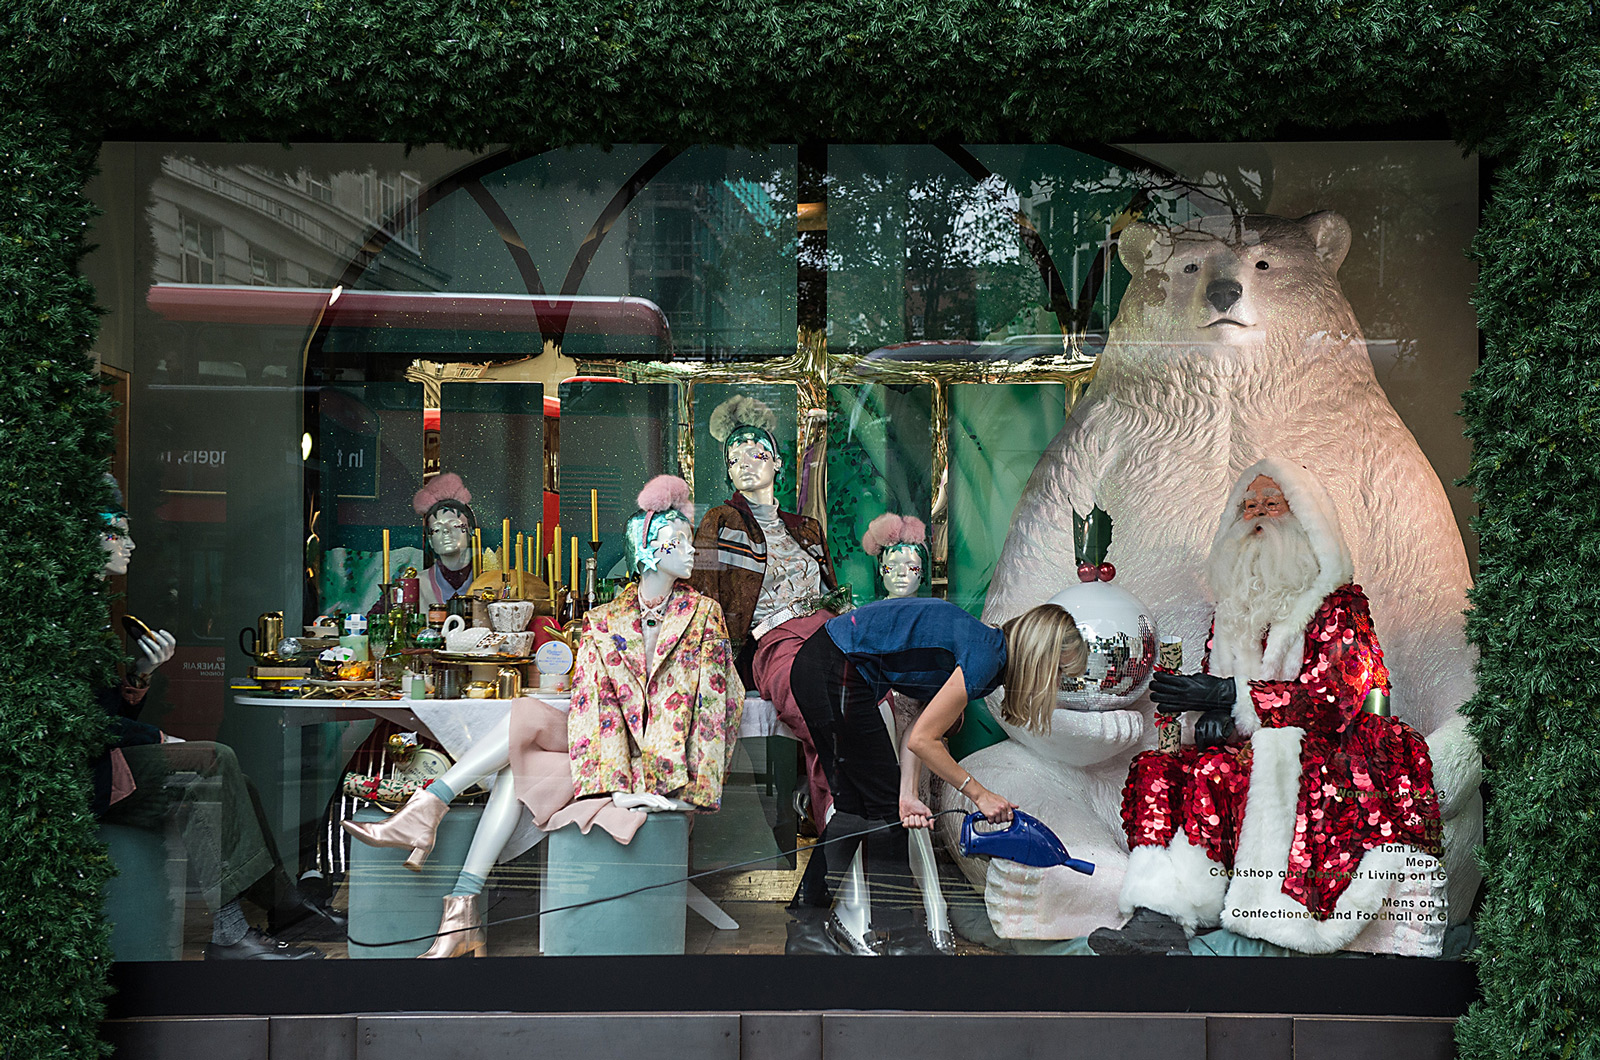 Almost all the important elements for Christmas: people having dinner, polar bear and Santa for this window display.